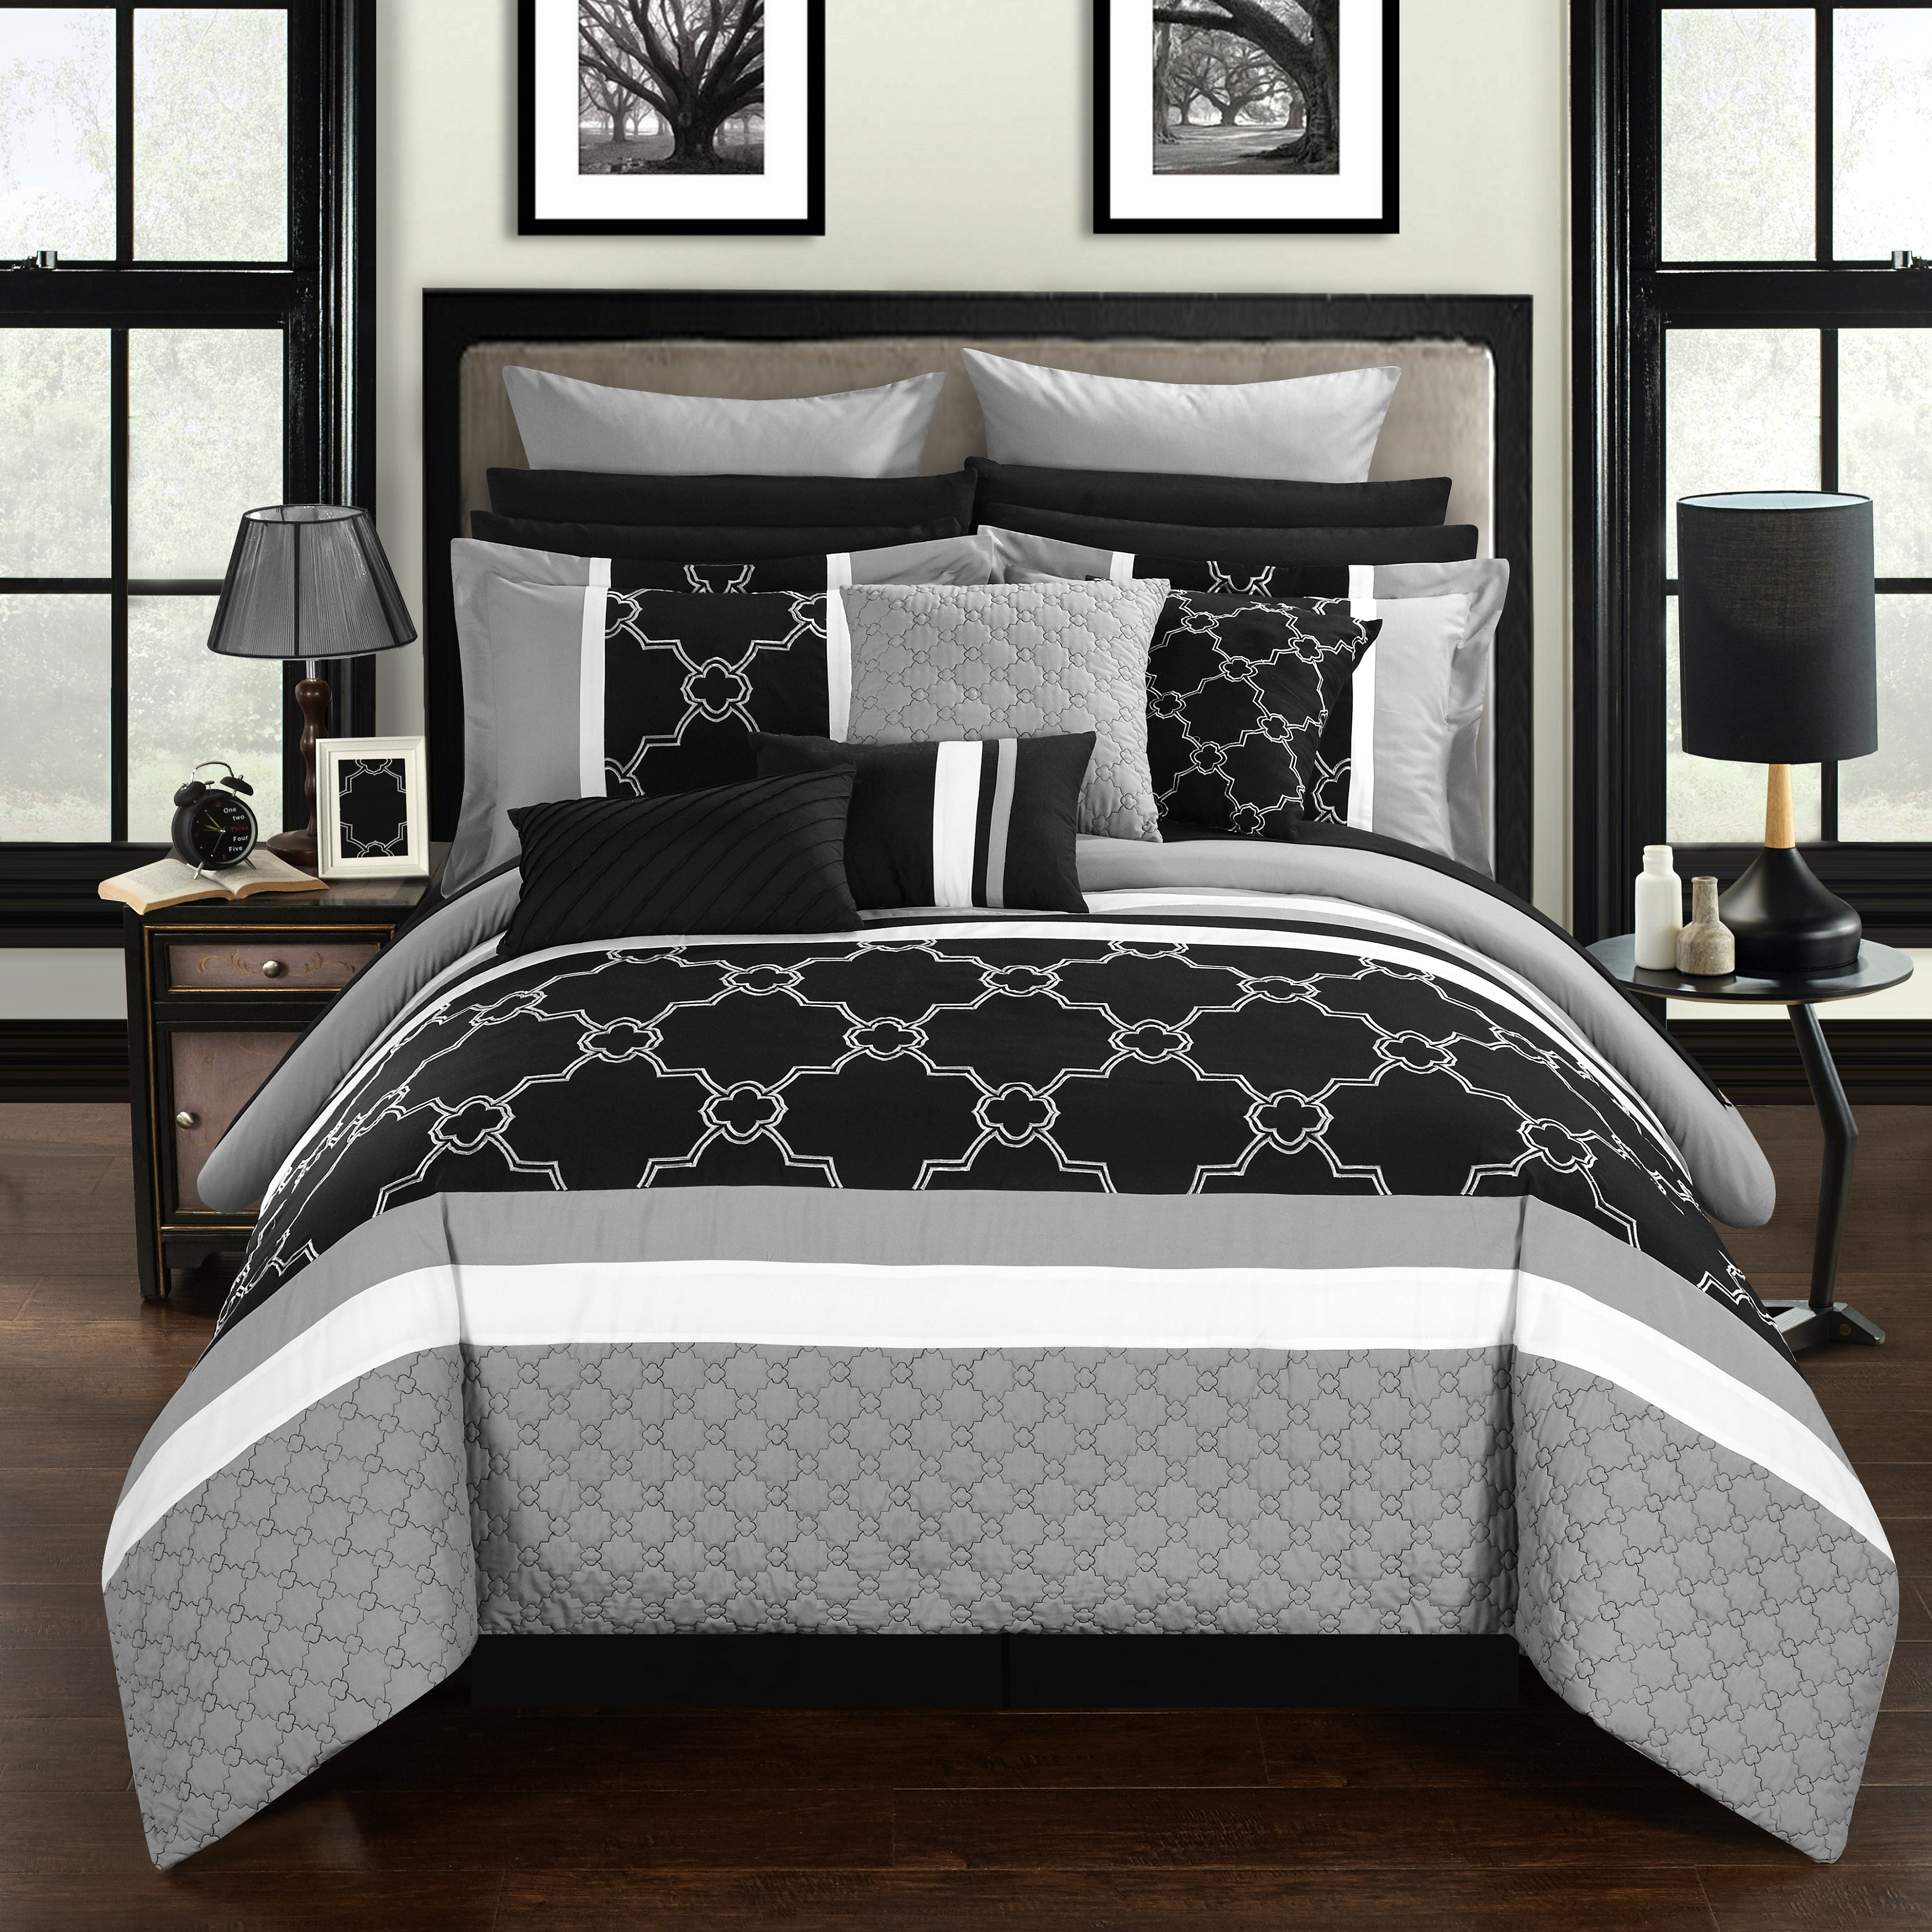 Chic Home 16-Piece Casper Pinch Contemporary Embroidered and Quilted Bed In a Bag Comforter Set with Sheets